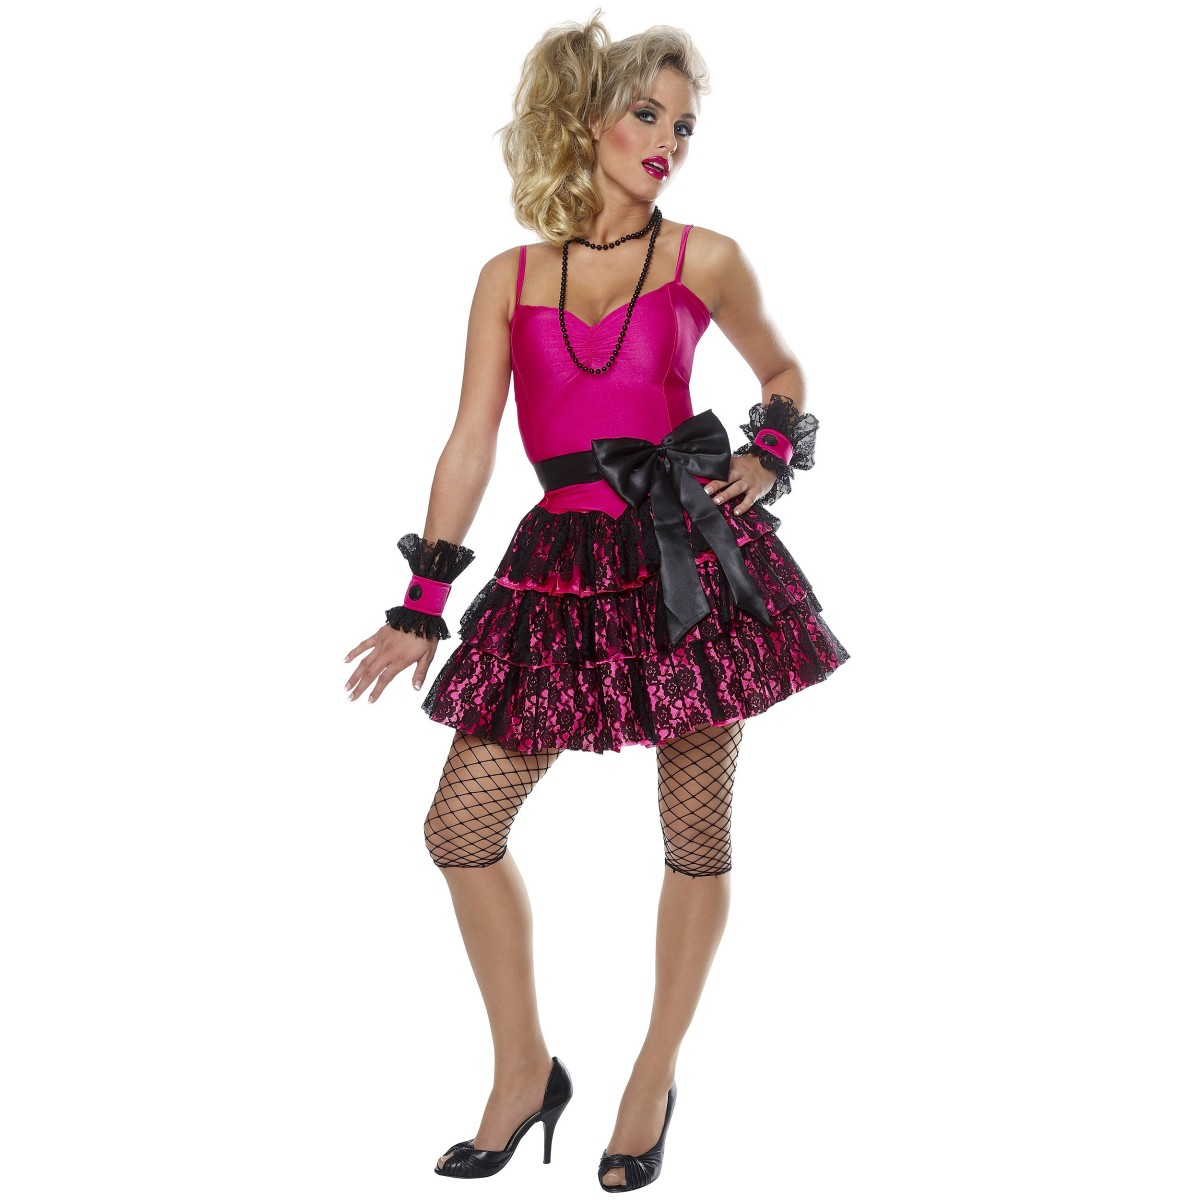 888 80s Madonna Pop Star Material Girl Dress Up Costume | eBay